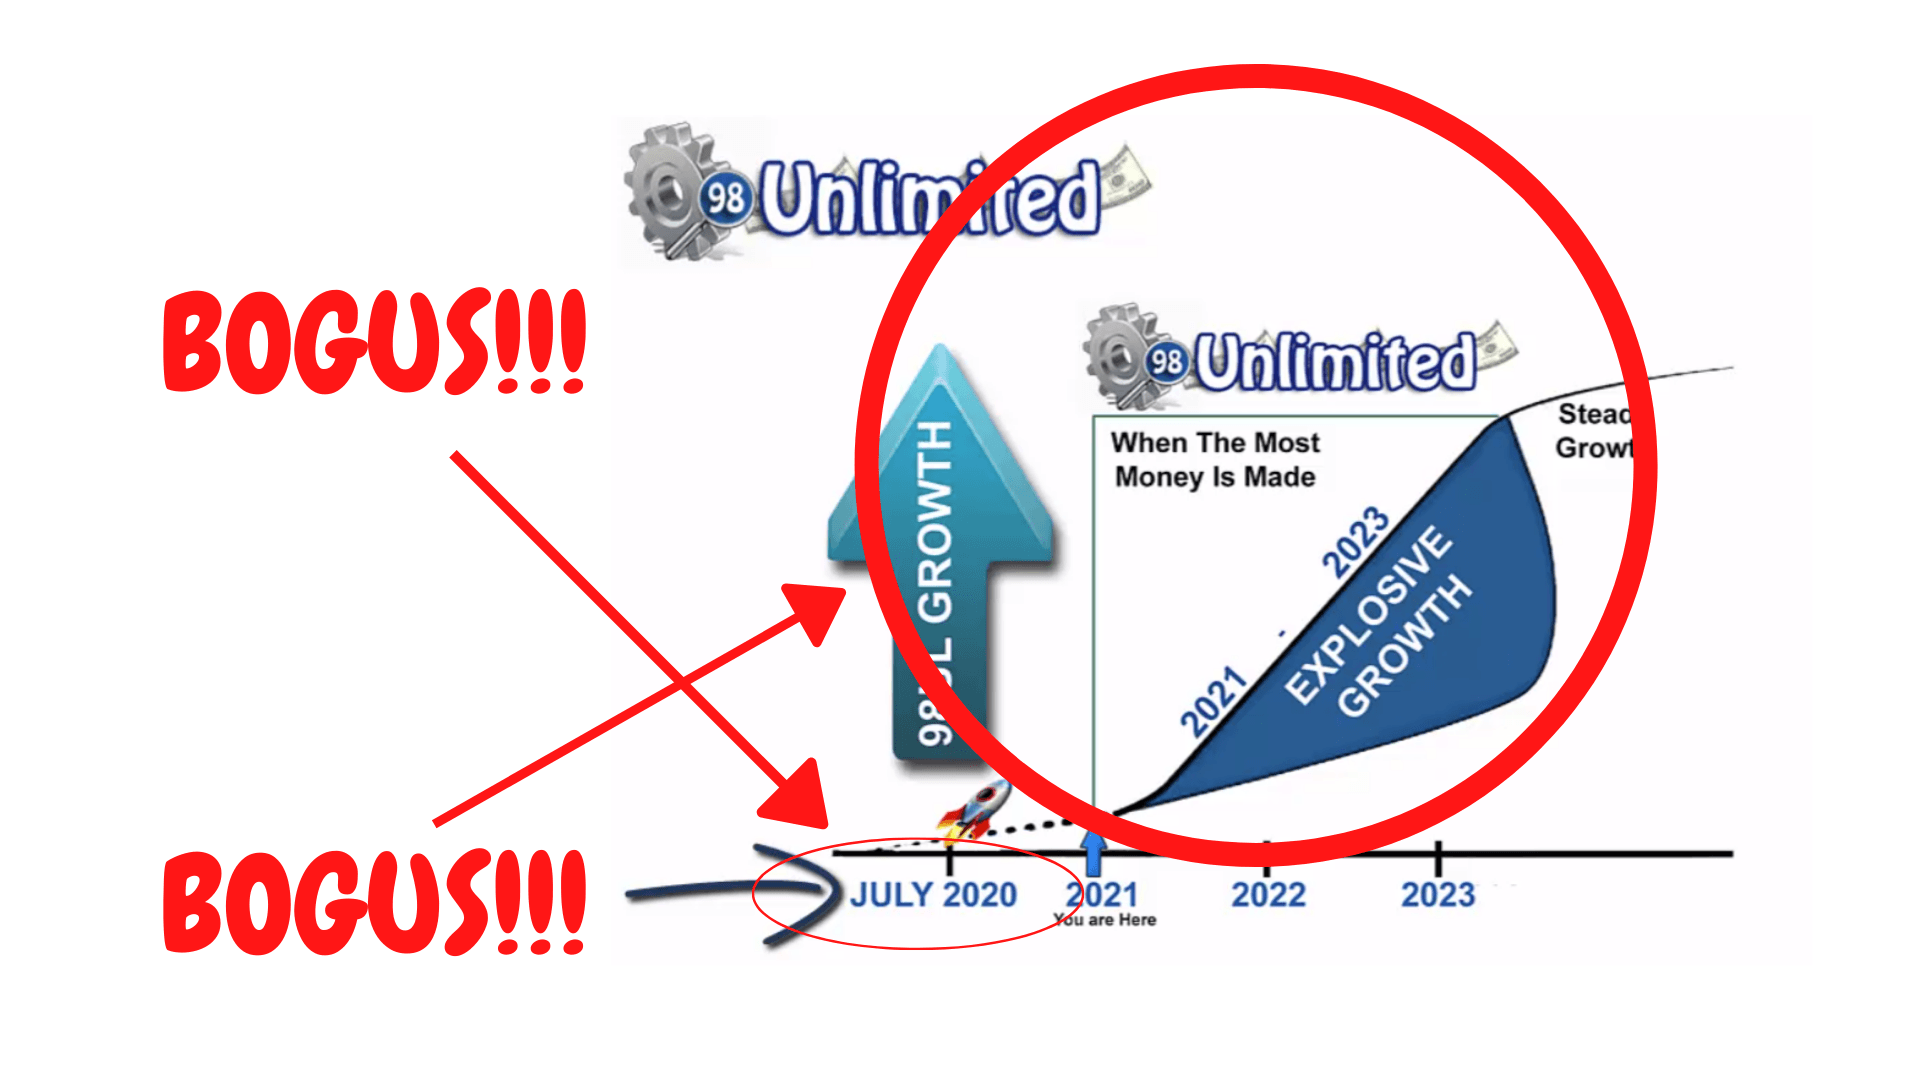 98 Unlimited misleading business structure